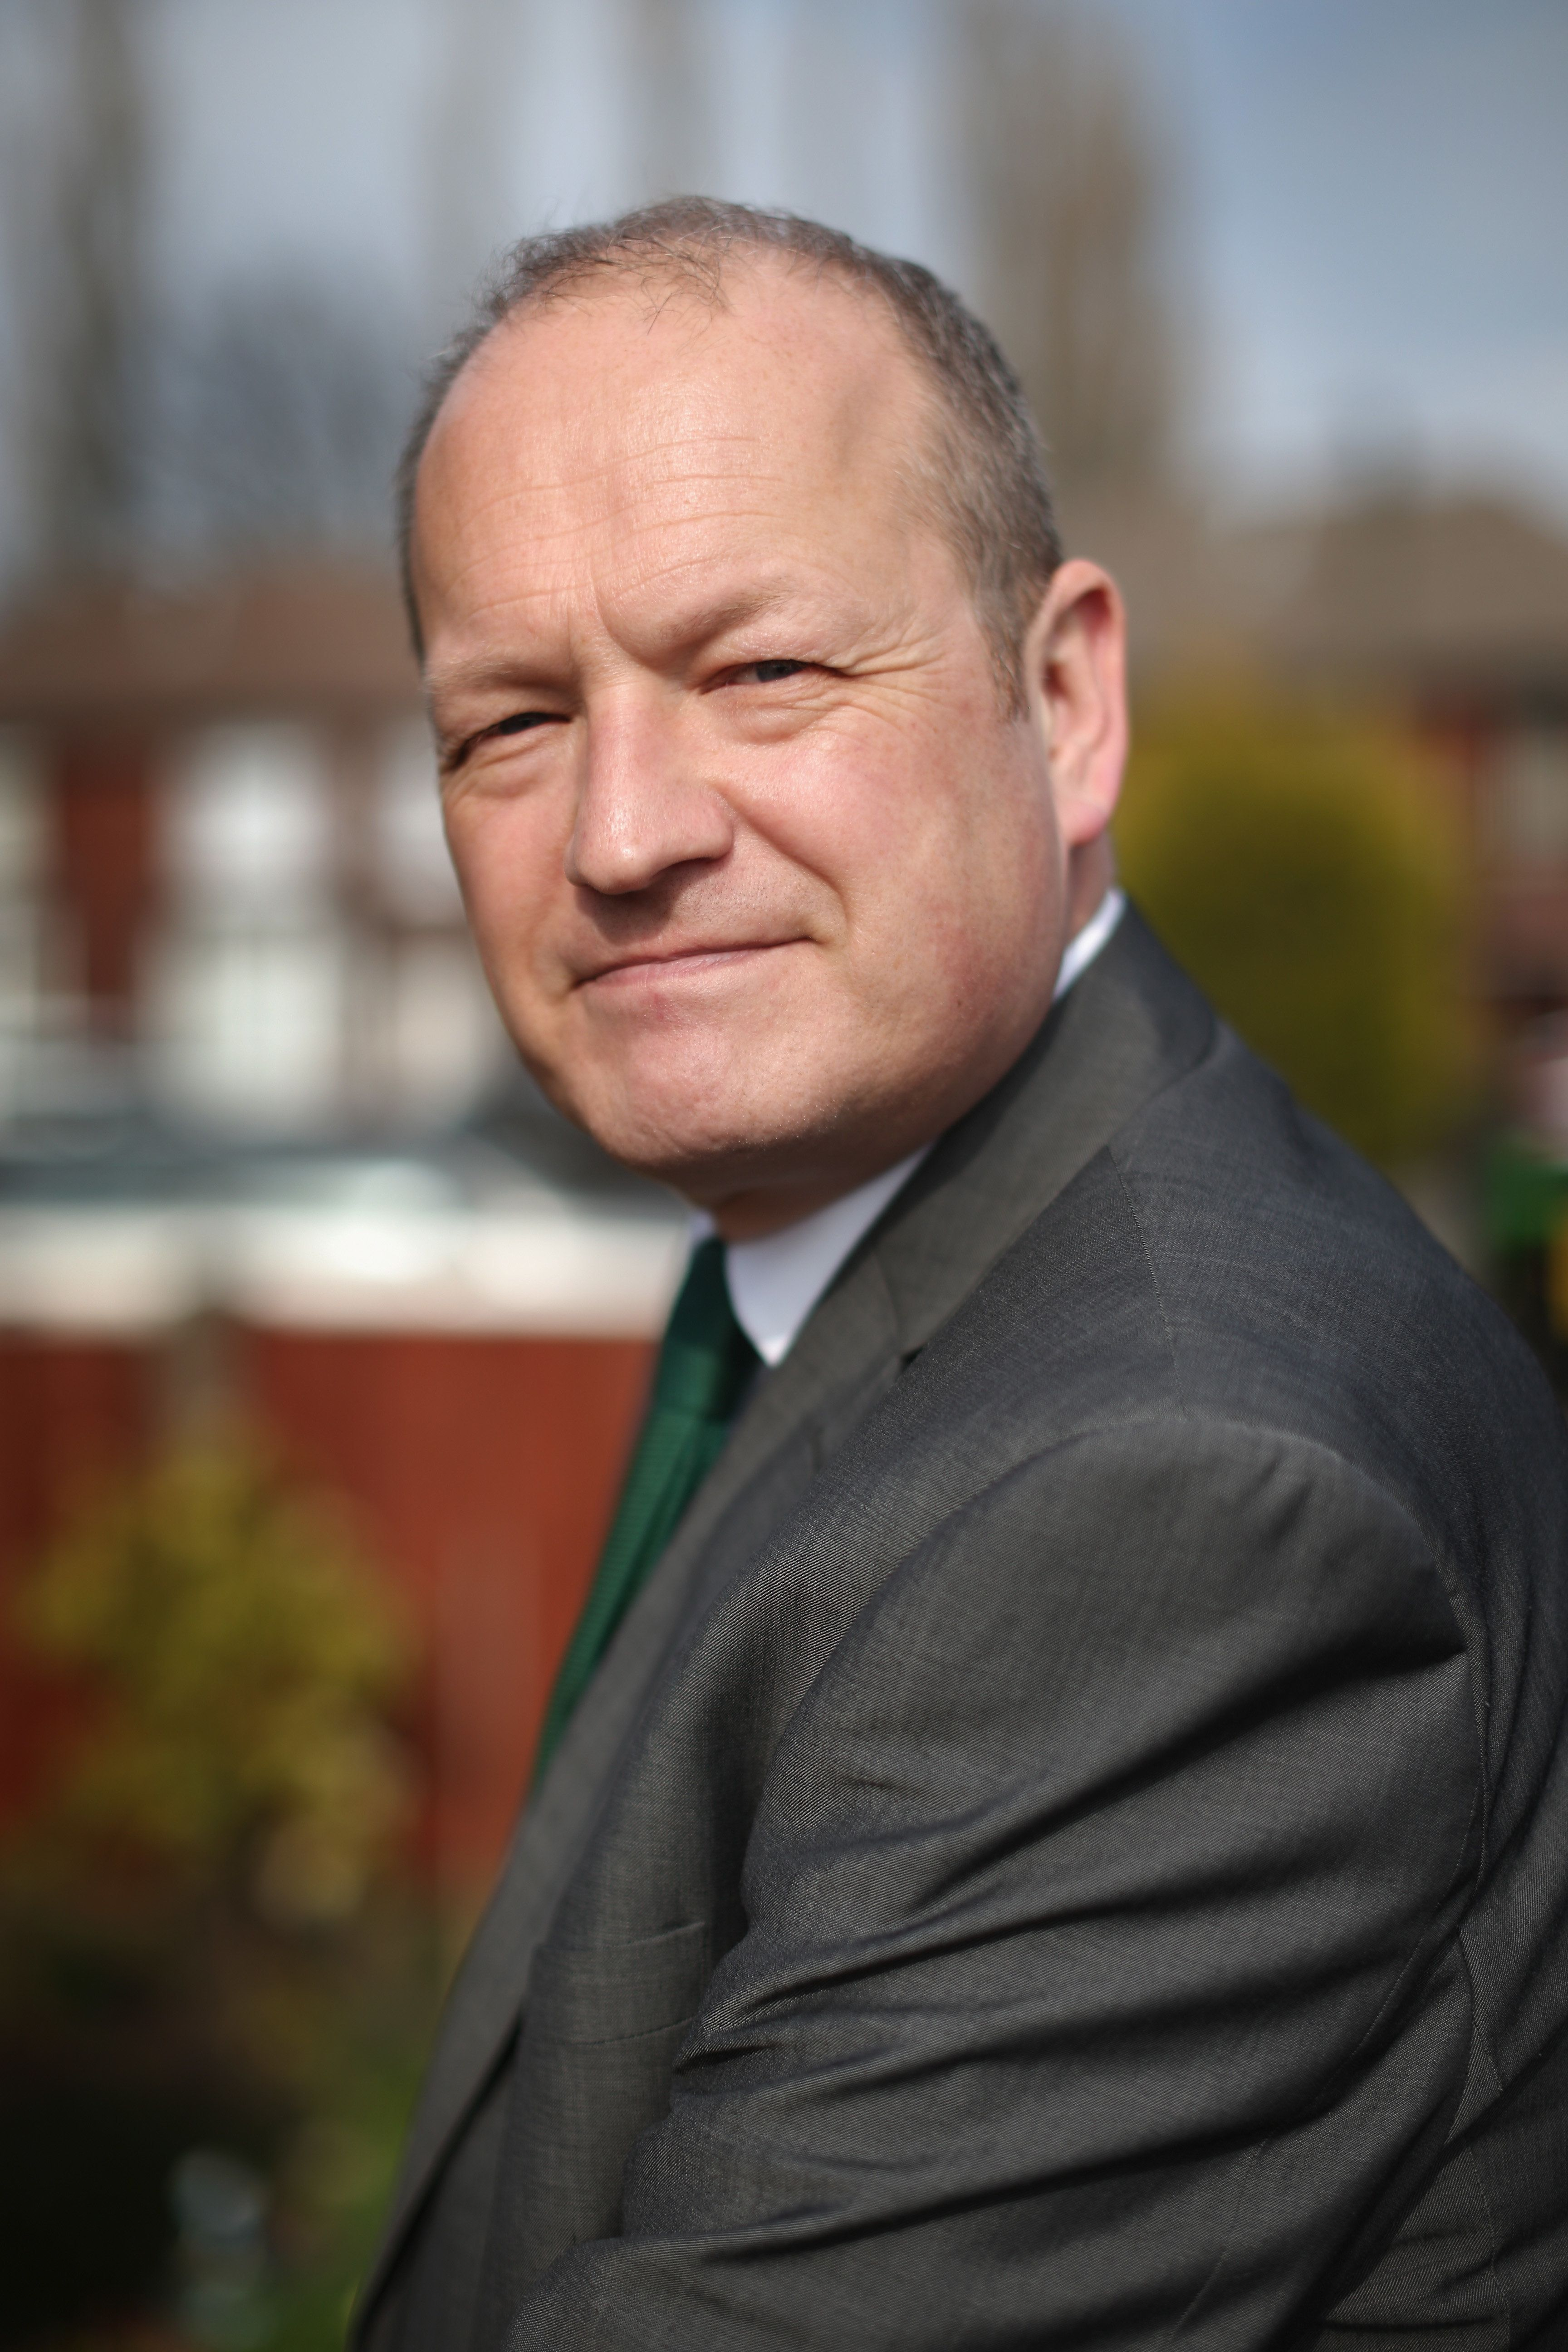 Simon Danczuk Says Westminster Rape Allegation Is 'Totally